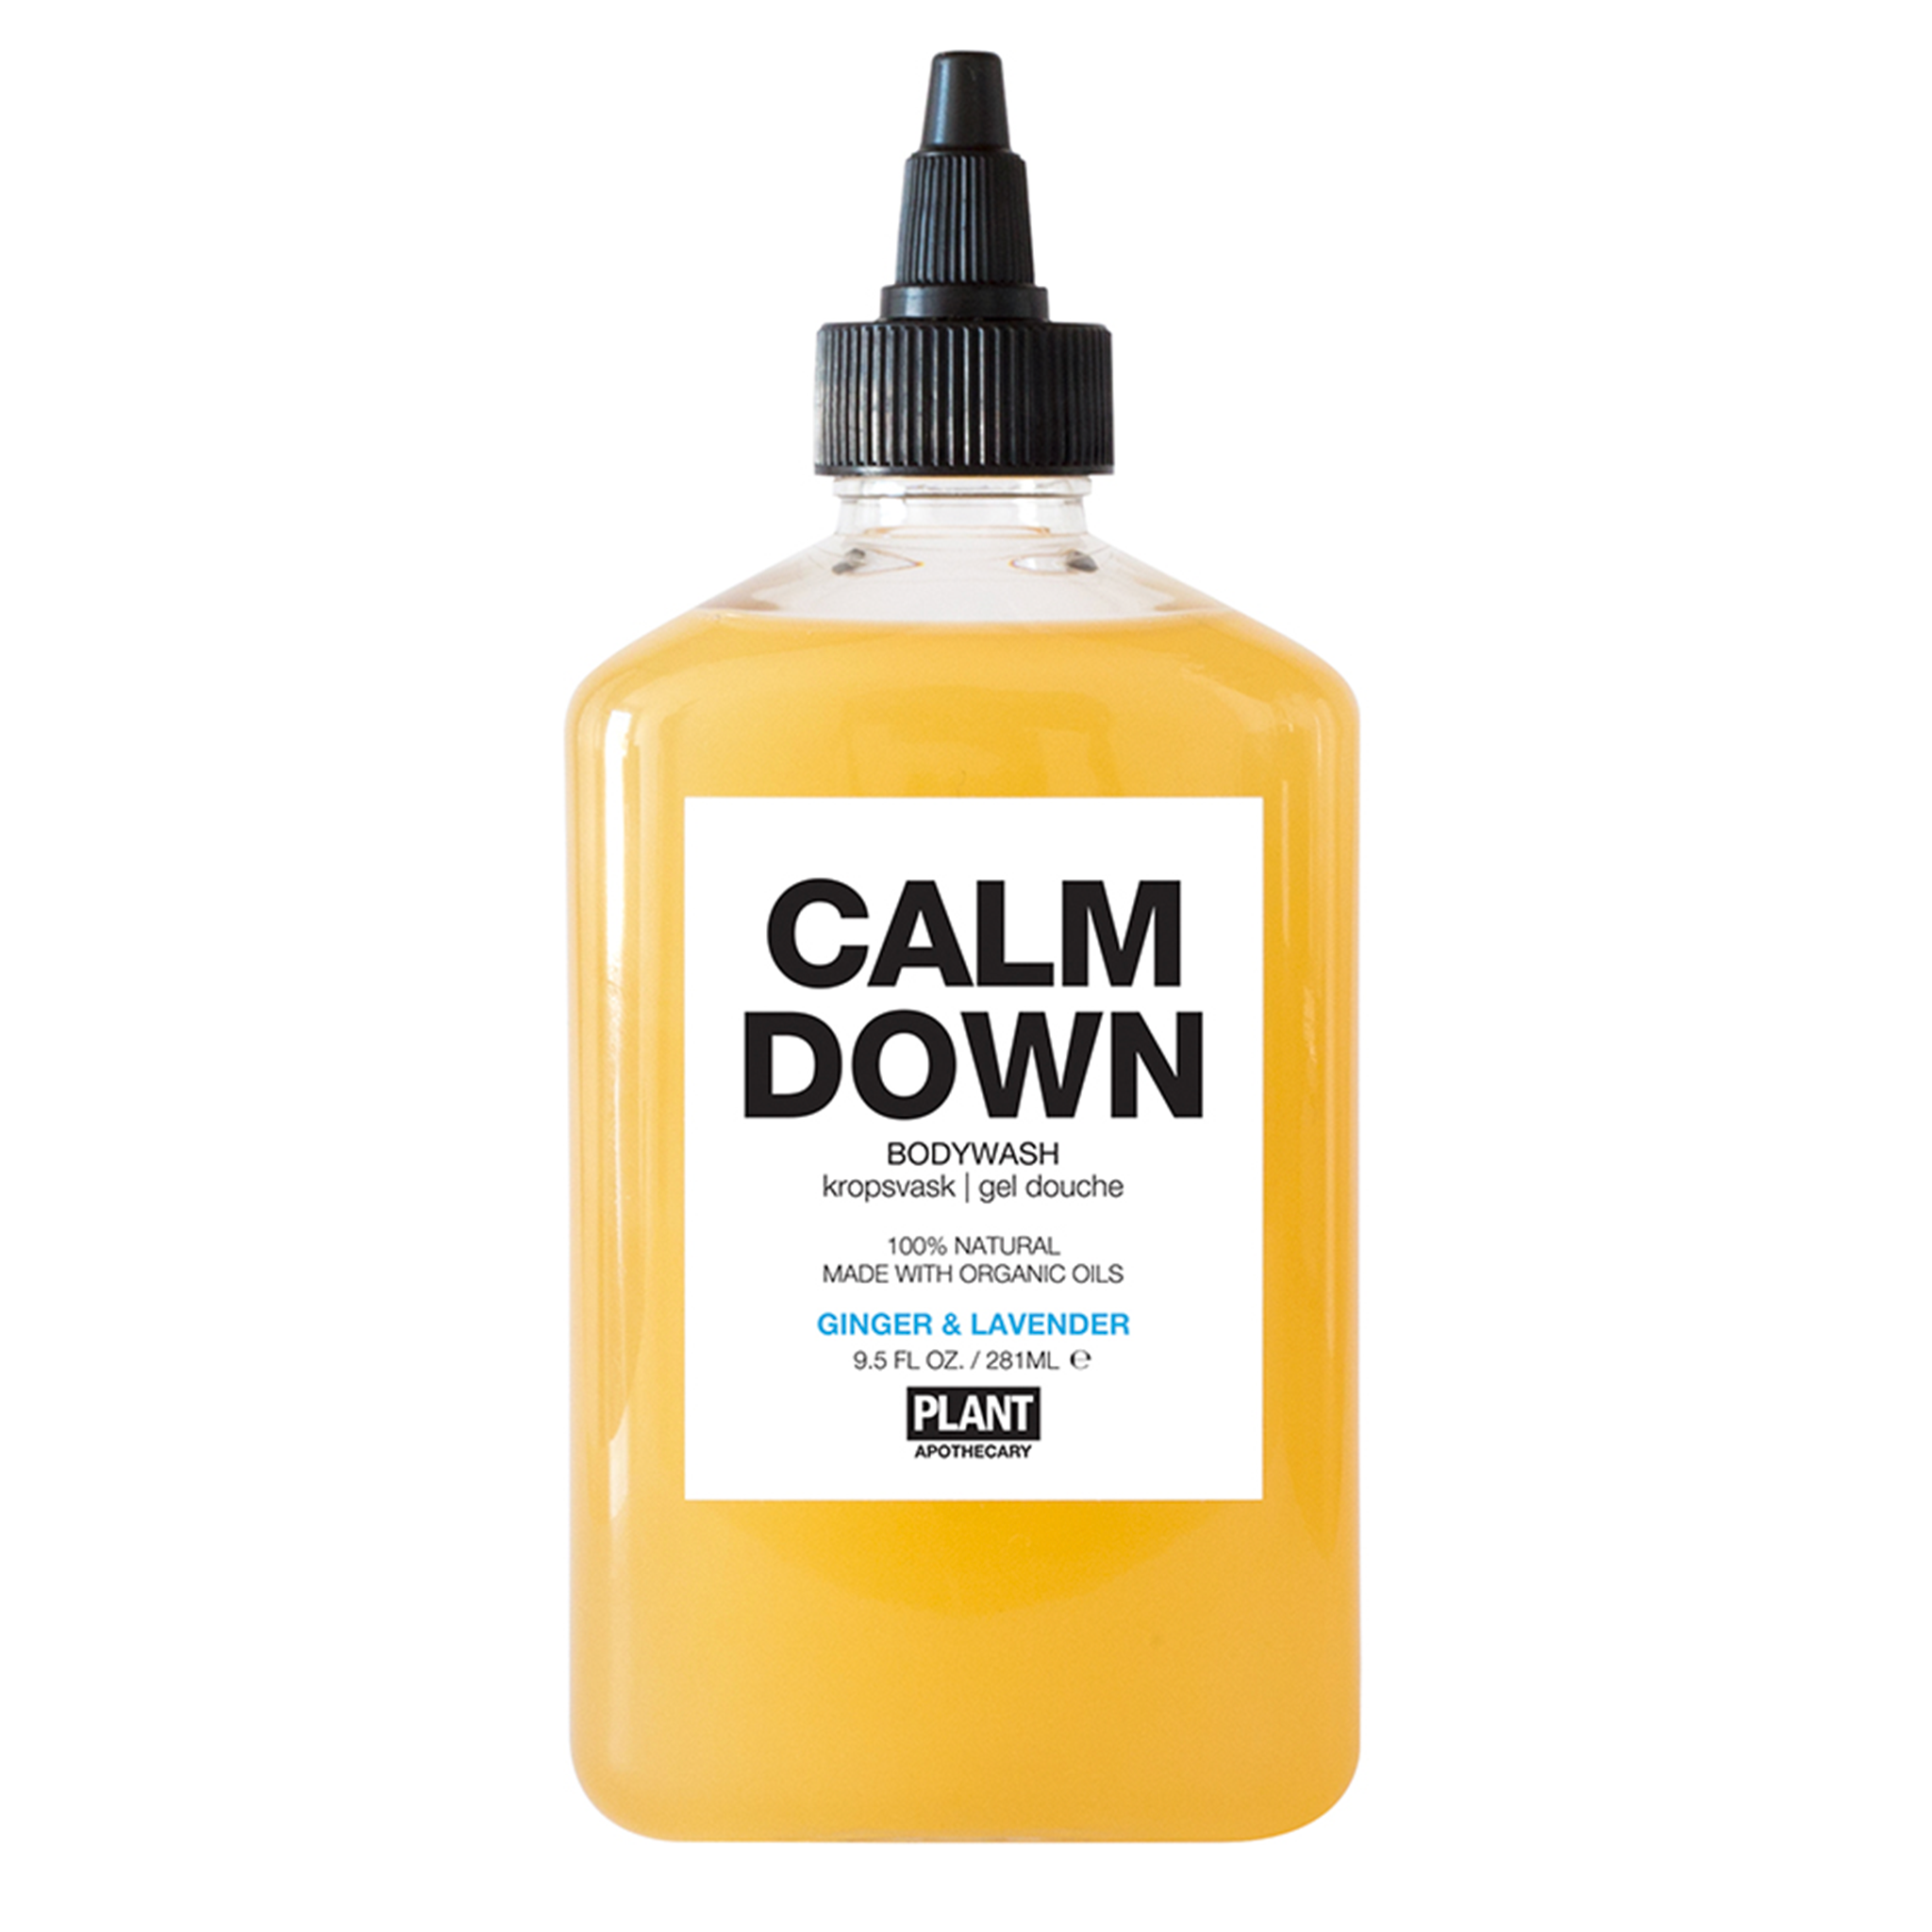 PLANT Apothecary Calm Down Body Wash 9.5 oz